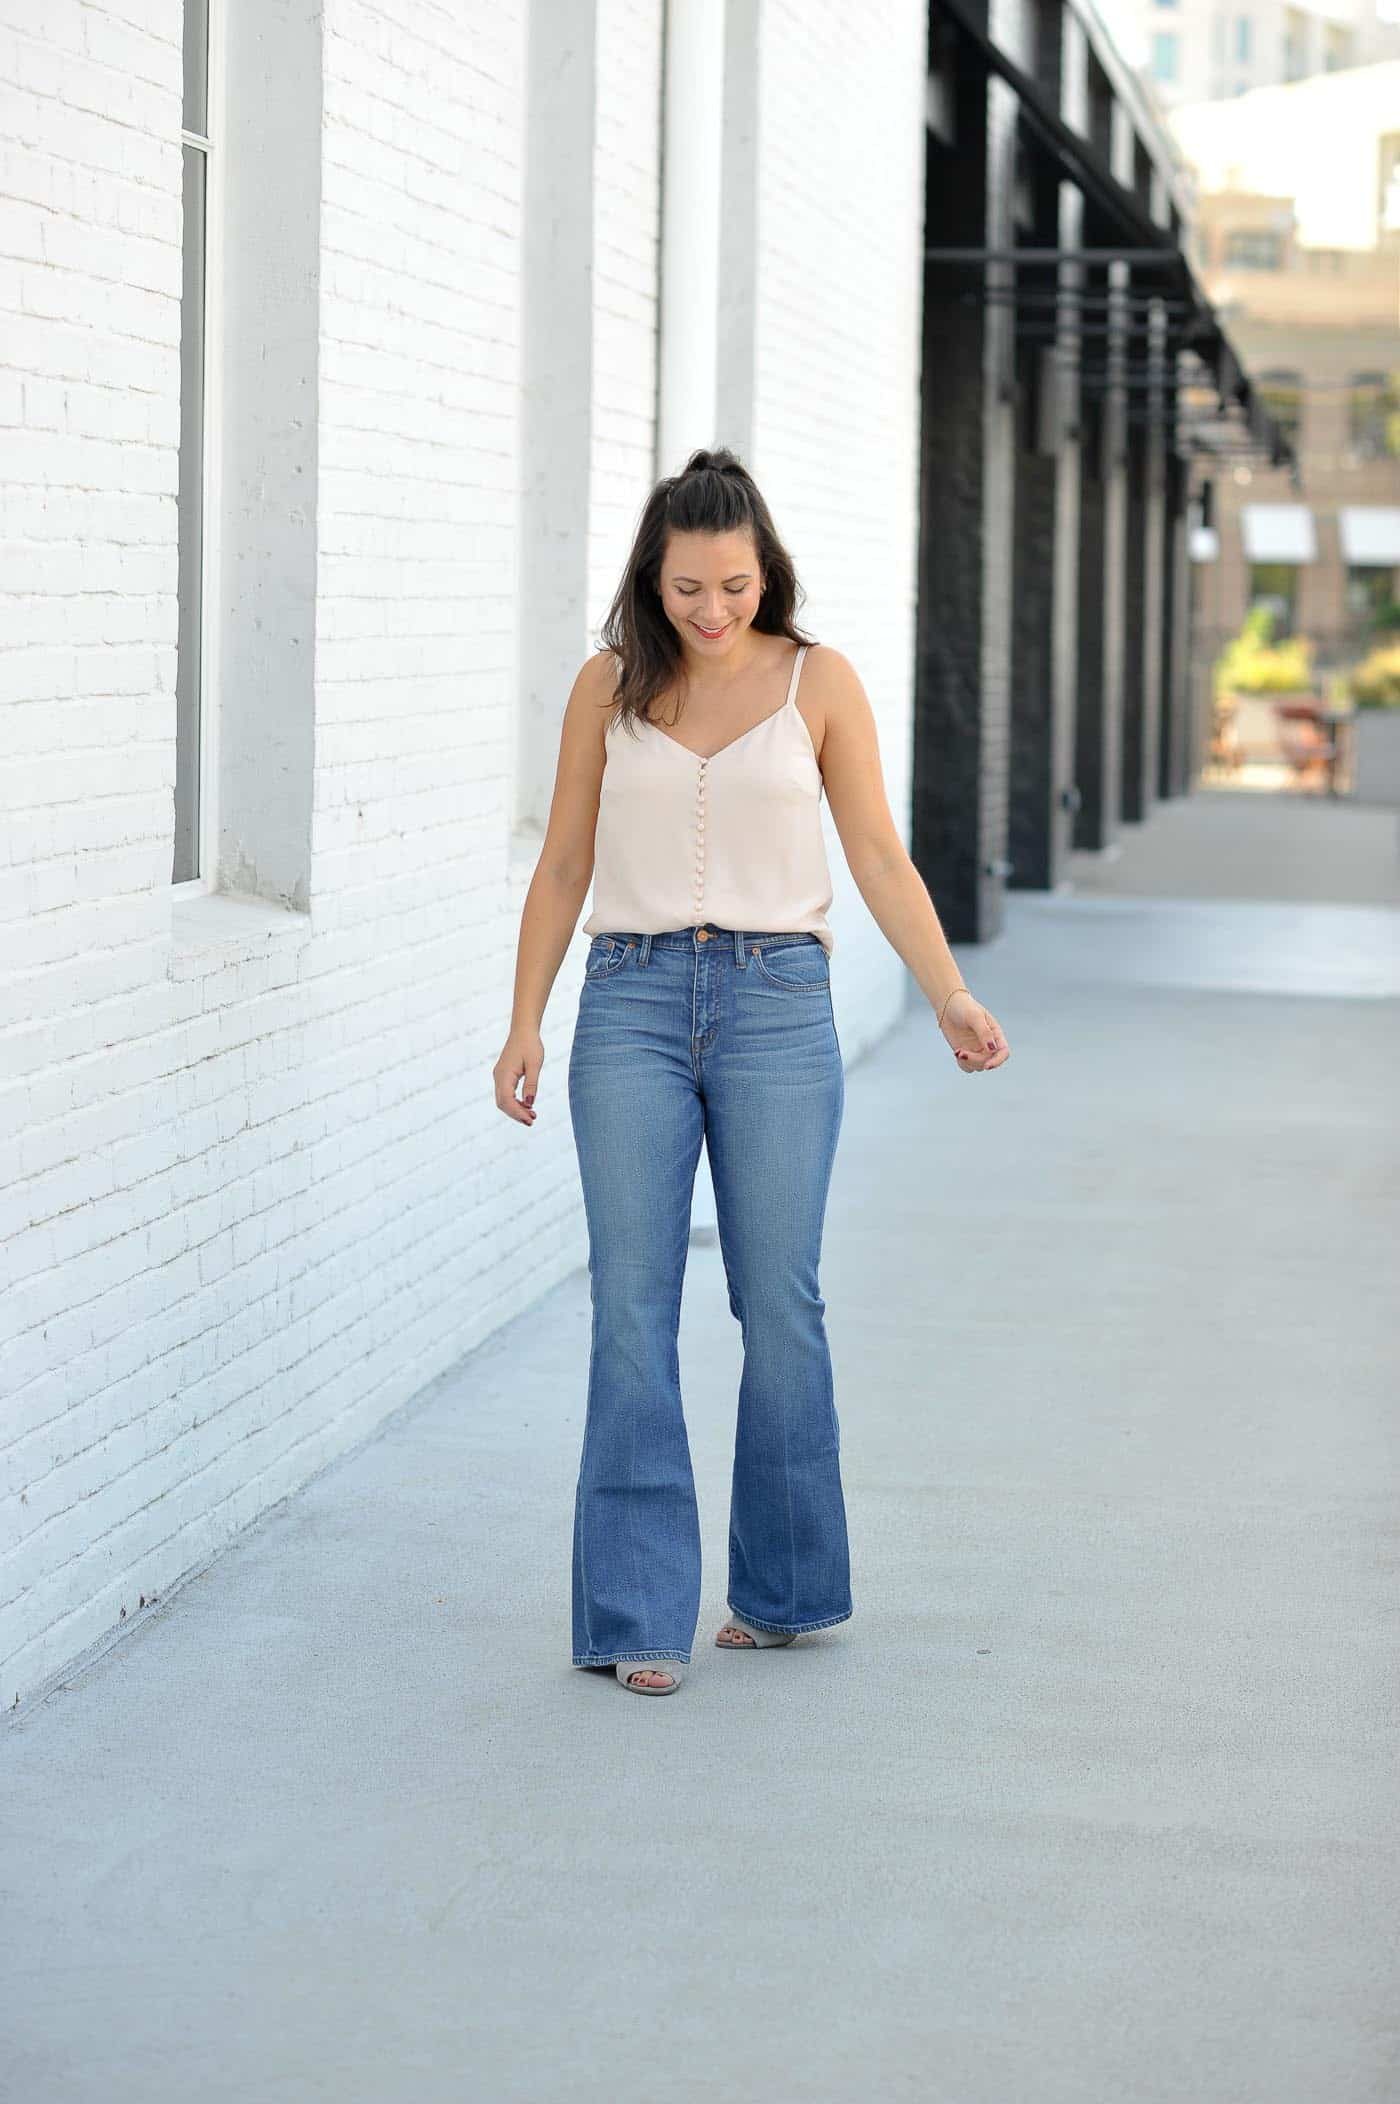 Millennial pink outfit idea, blush button down camisole, wide leg jeans - My Style Vita @mystylevita